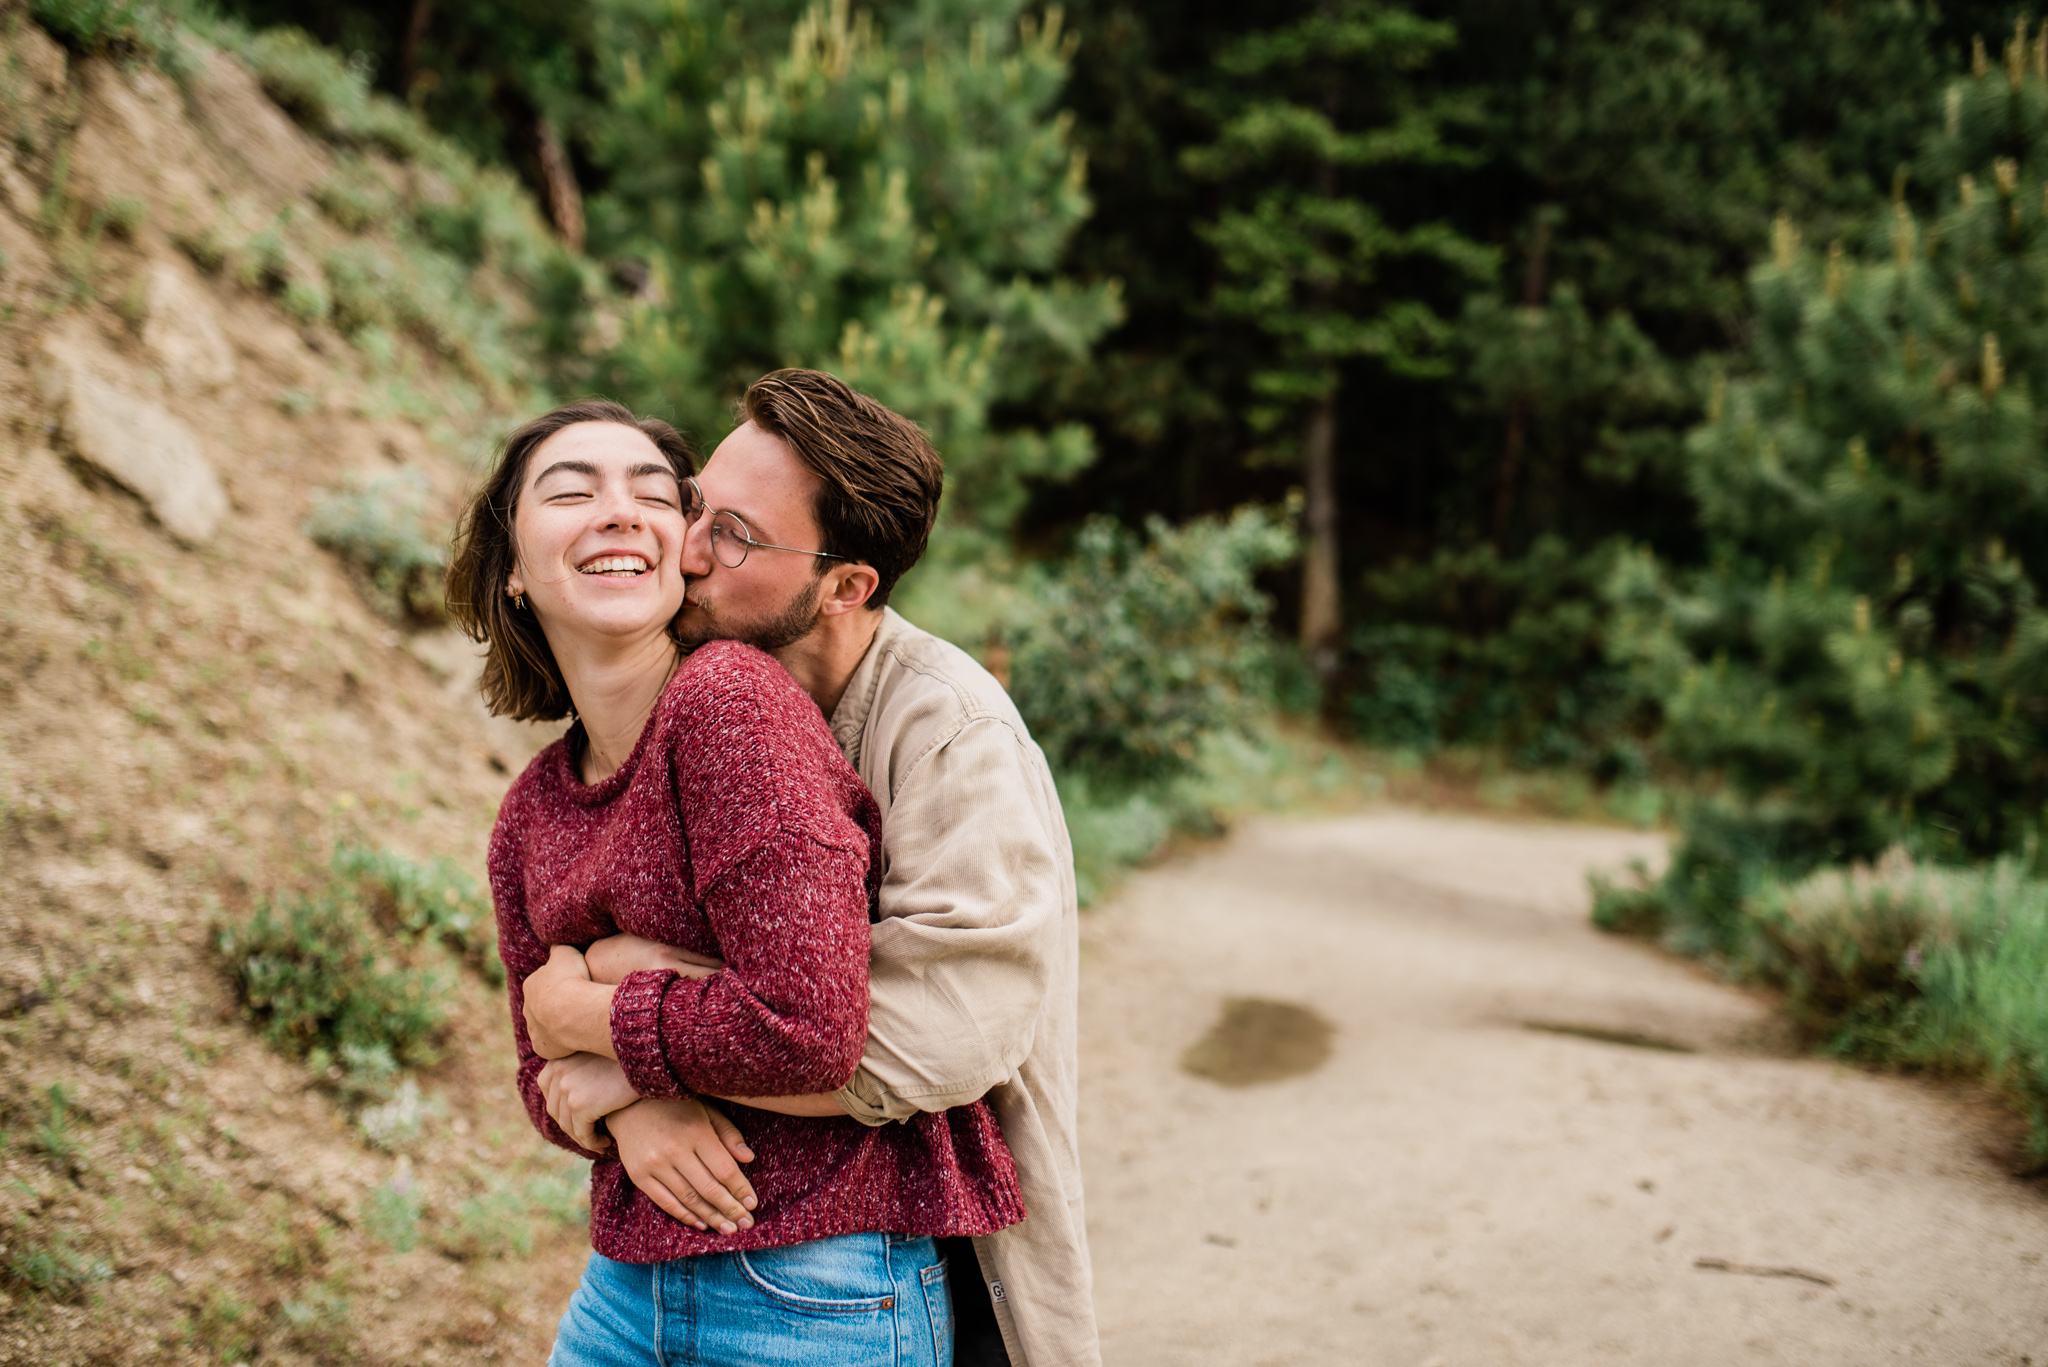 Boise Wedding Photographer // Idaho engagement photographer // Cozy Posing // Sweaters // PNW Engagement // Wedding // Idaho Engagement Session // Natural Couples Posing Ideas // Cozy Sweaters // hipster couples // mountain couples photography // Mountains // couples Outfit Ideas // levis // casual couples outfit // Summer couples session // bogus basin // Forest // coffee session // guitar // boise couples photographer // SS Photography & Design // Sadie Shirts